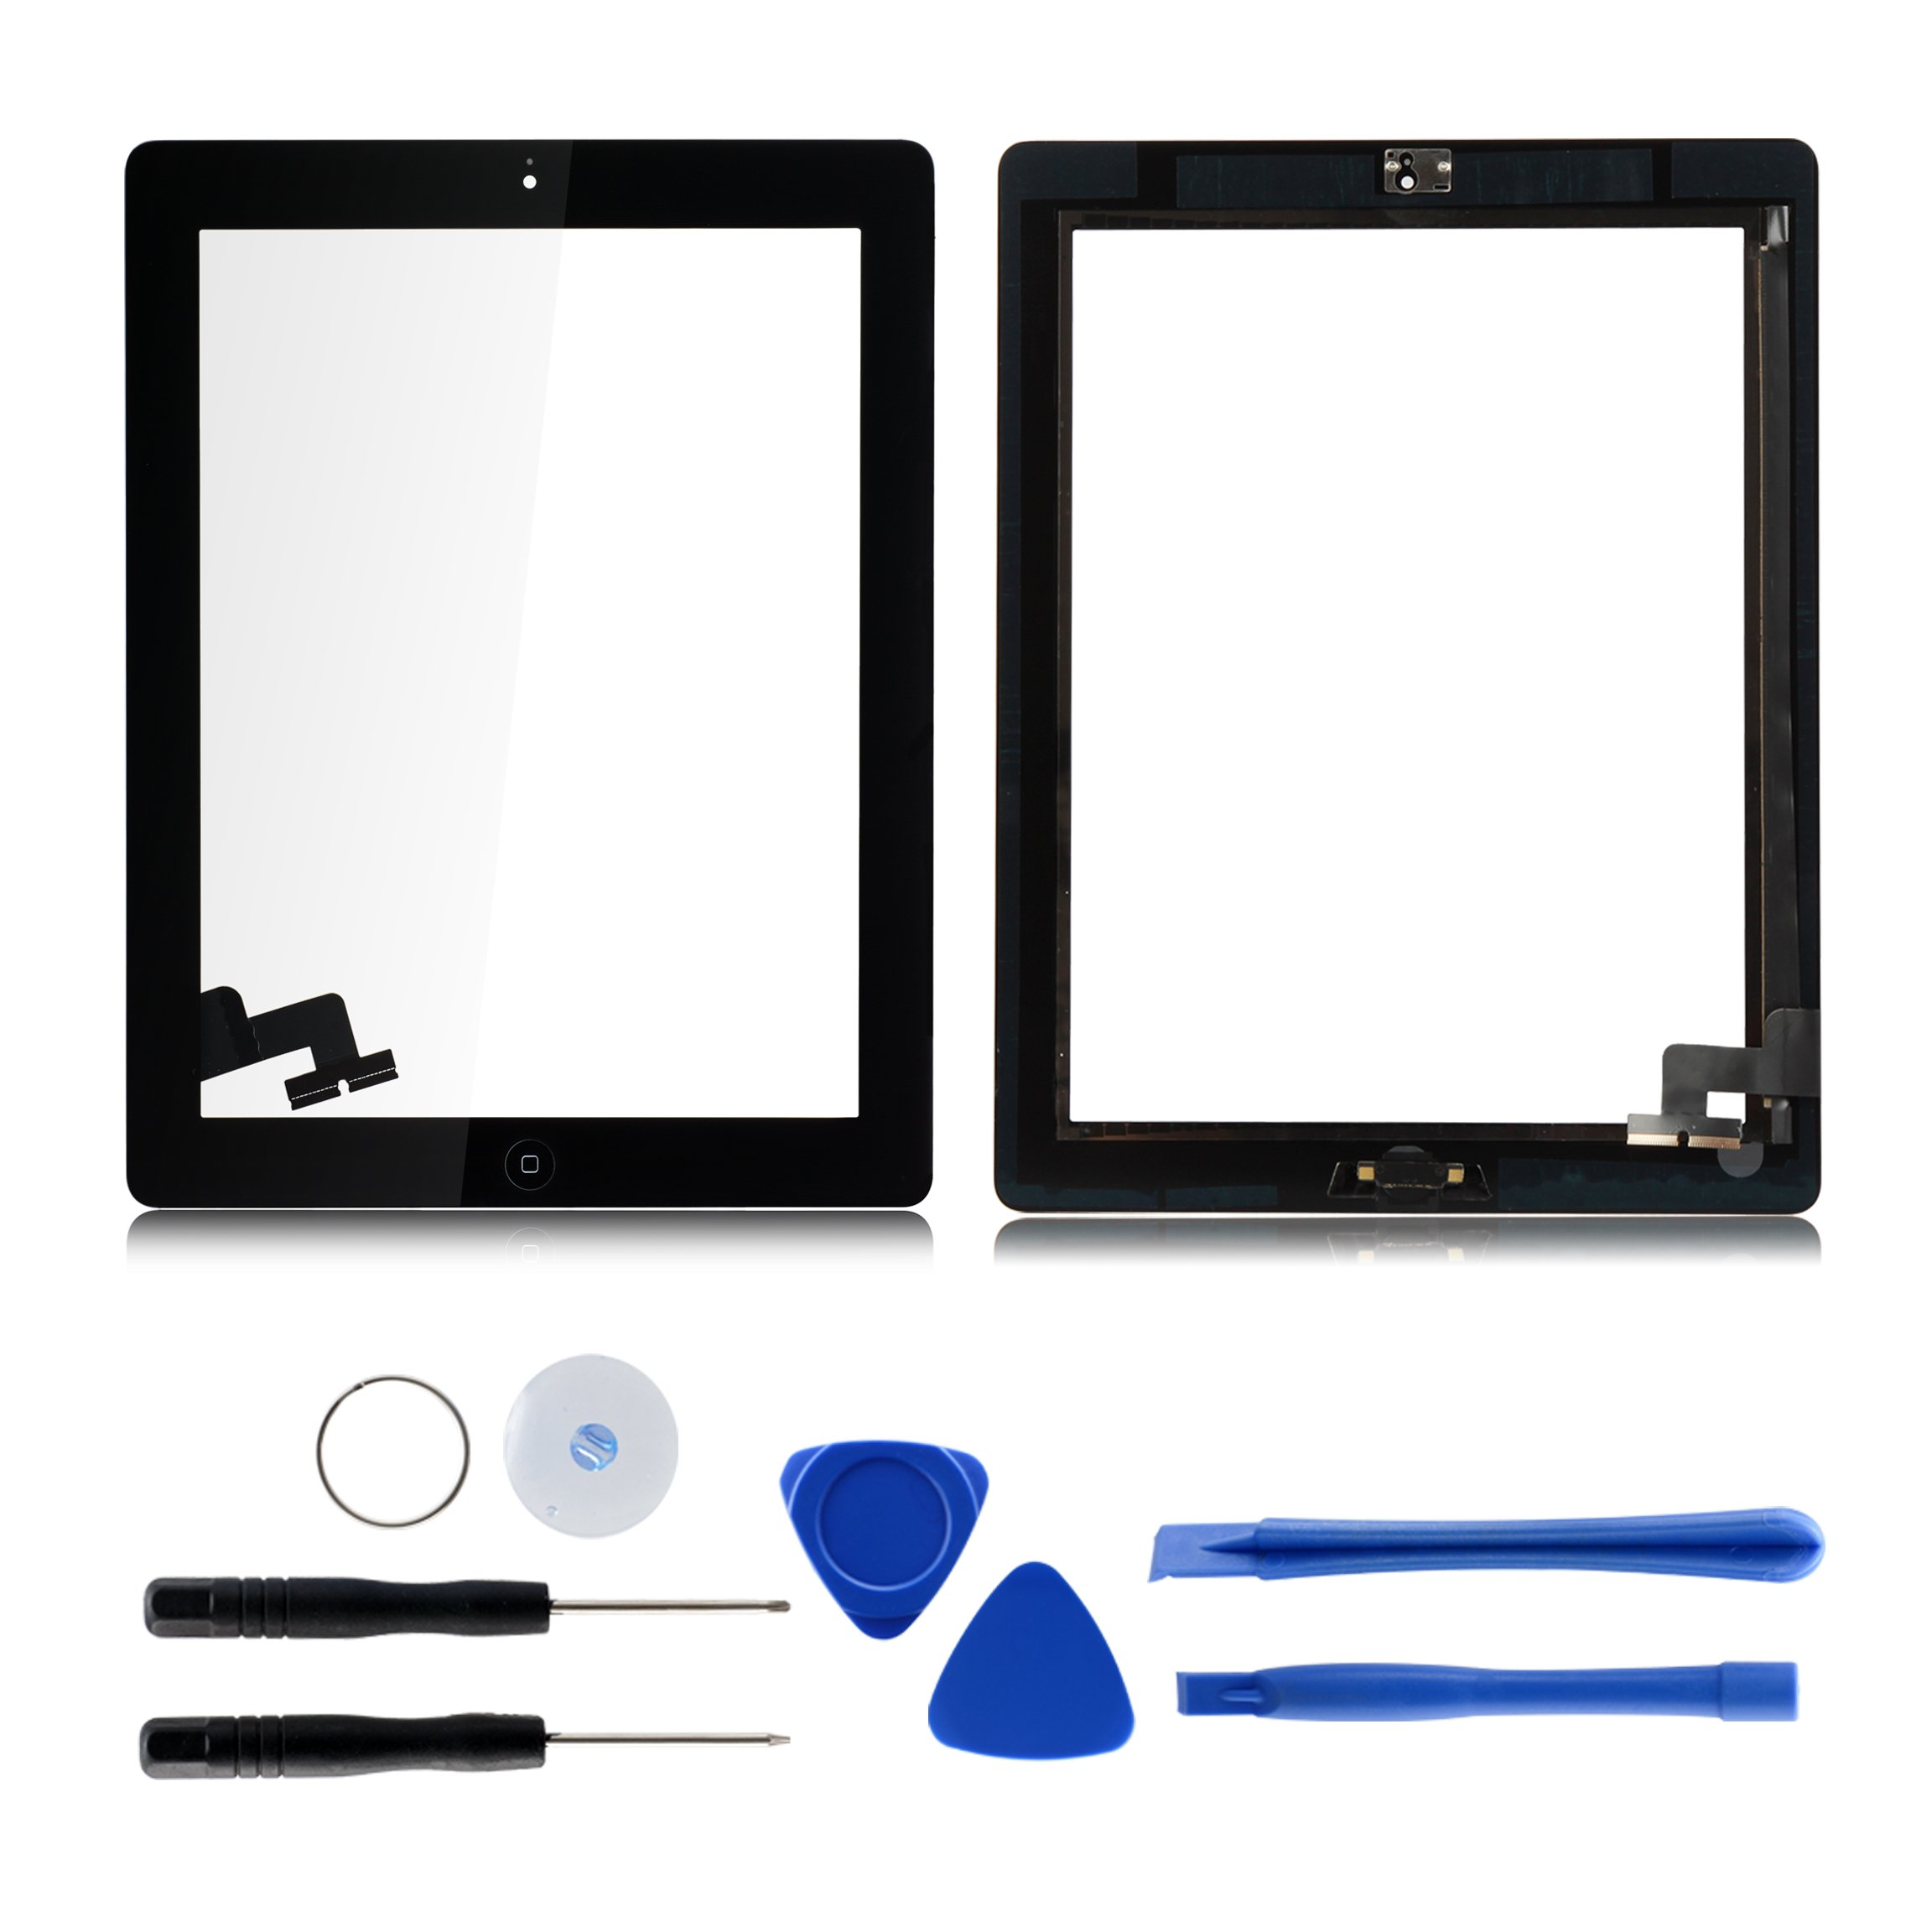 Touch Screen Digitizer Assembled for Ipad 2 - Includes Home Button Assembly , Camera Holder and Preinstalled Adhesive( Black ) by LifeDecor